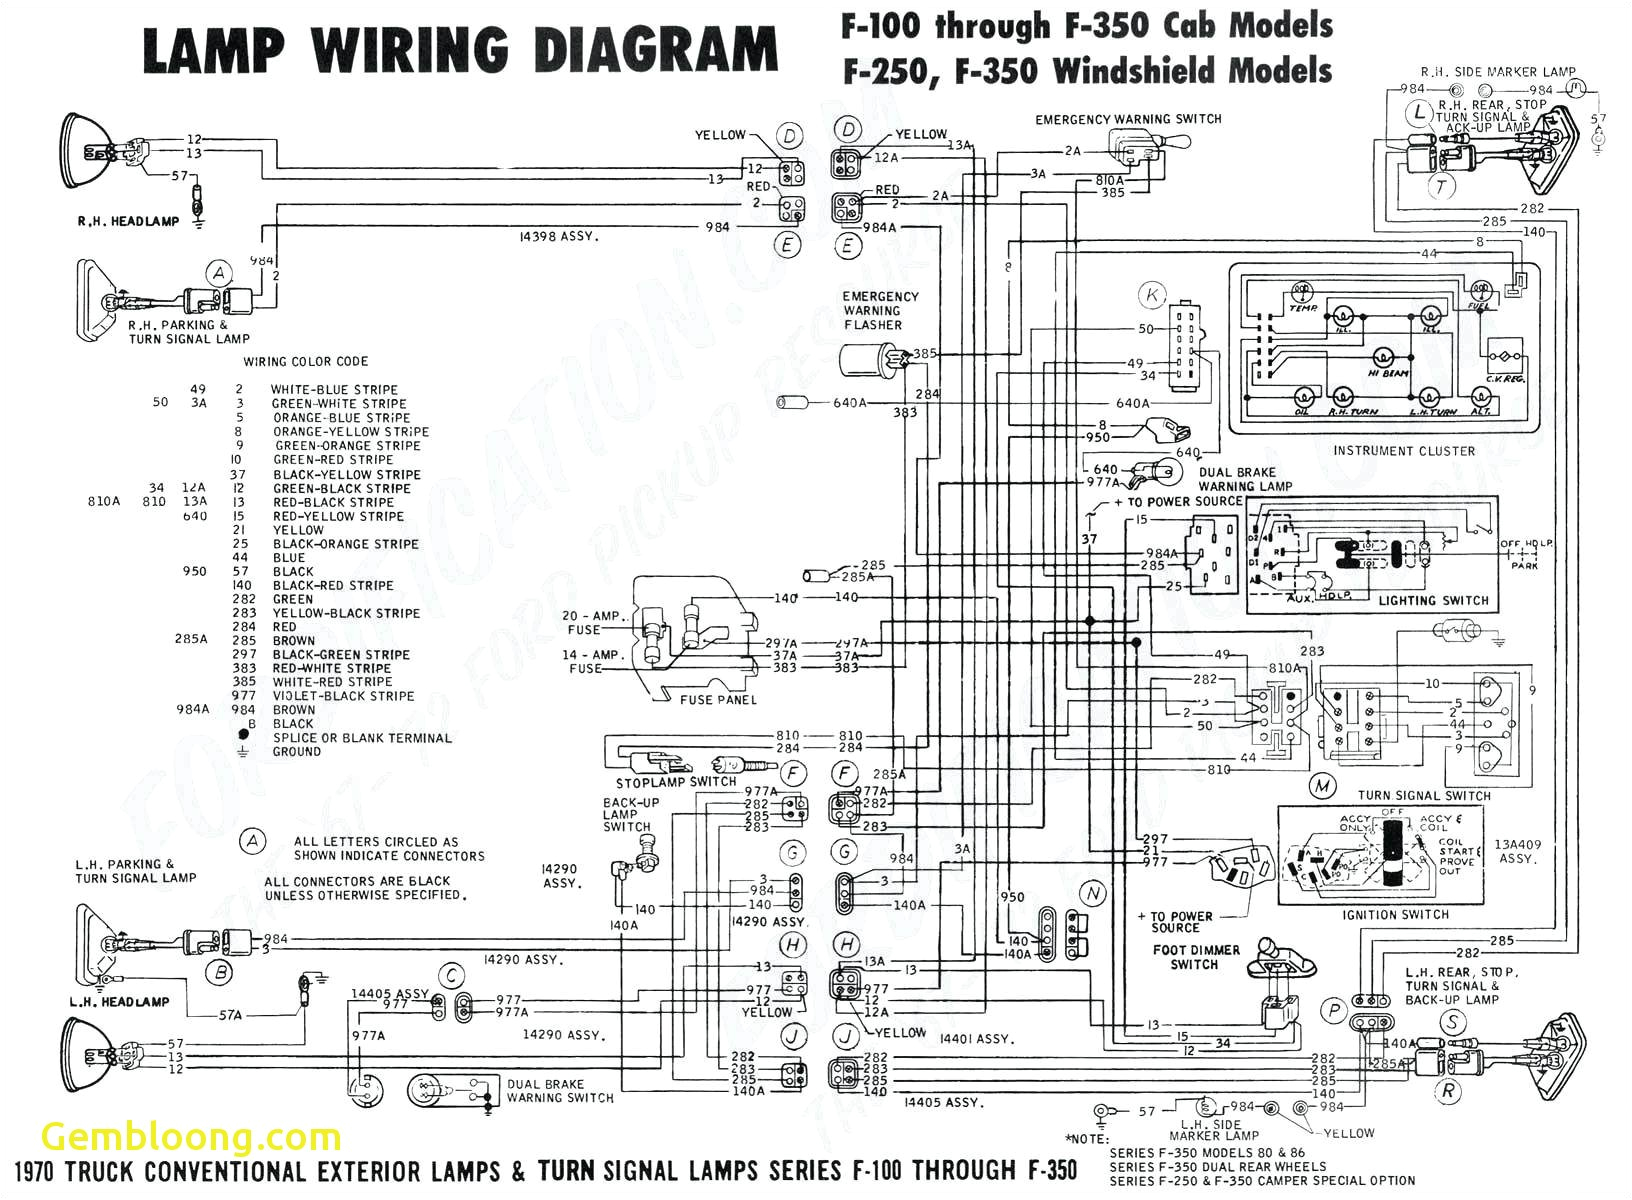 wiring diagram for 95 dodge neon wiring diagram database diagram further 2003 dodge neon pcm location also 2000 dodge neon